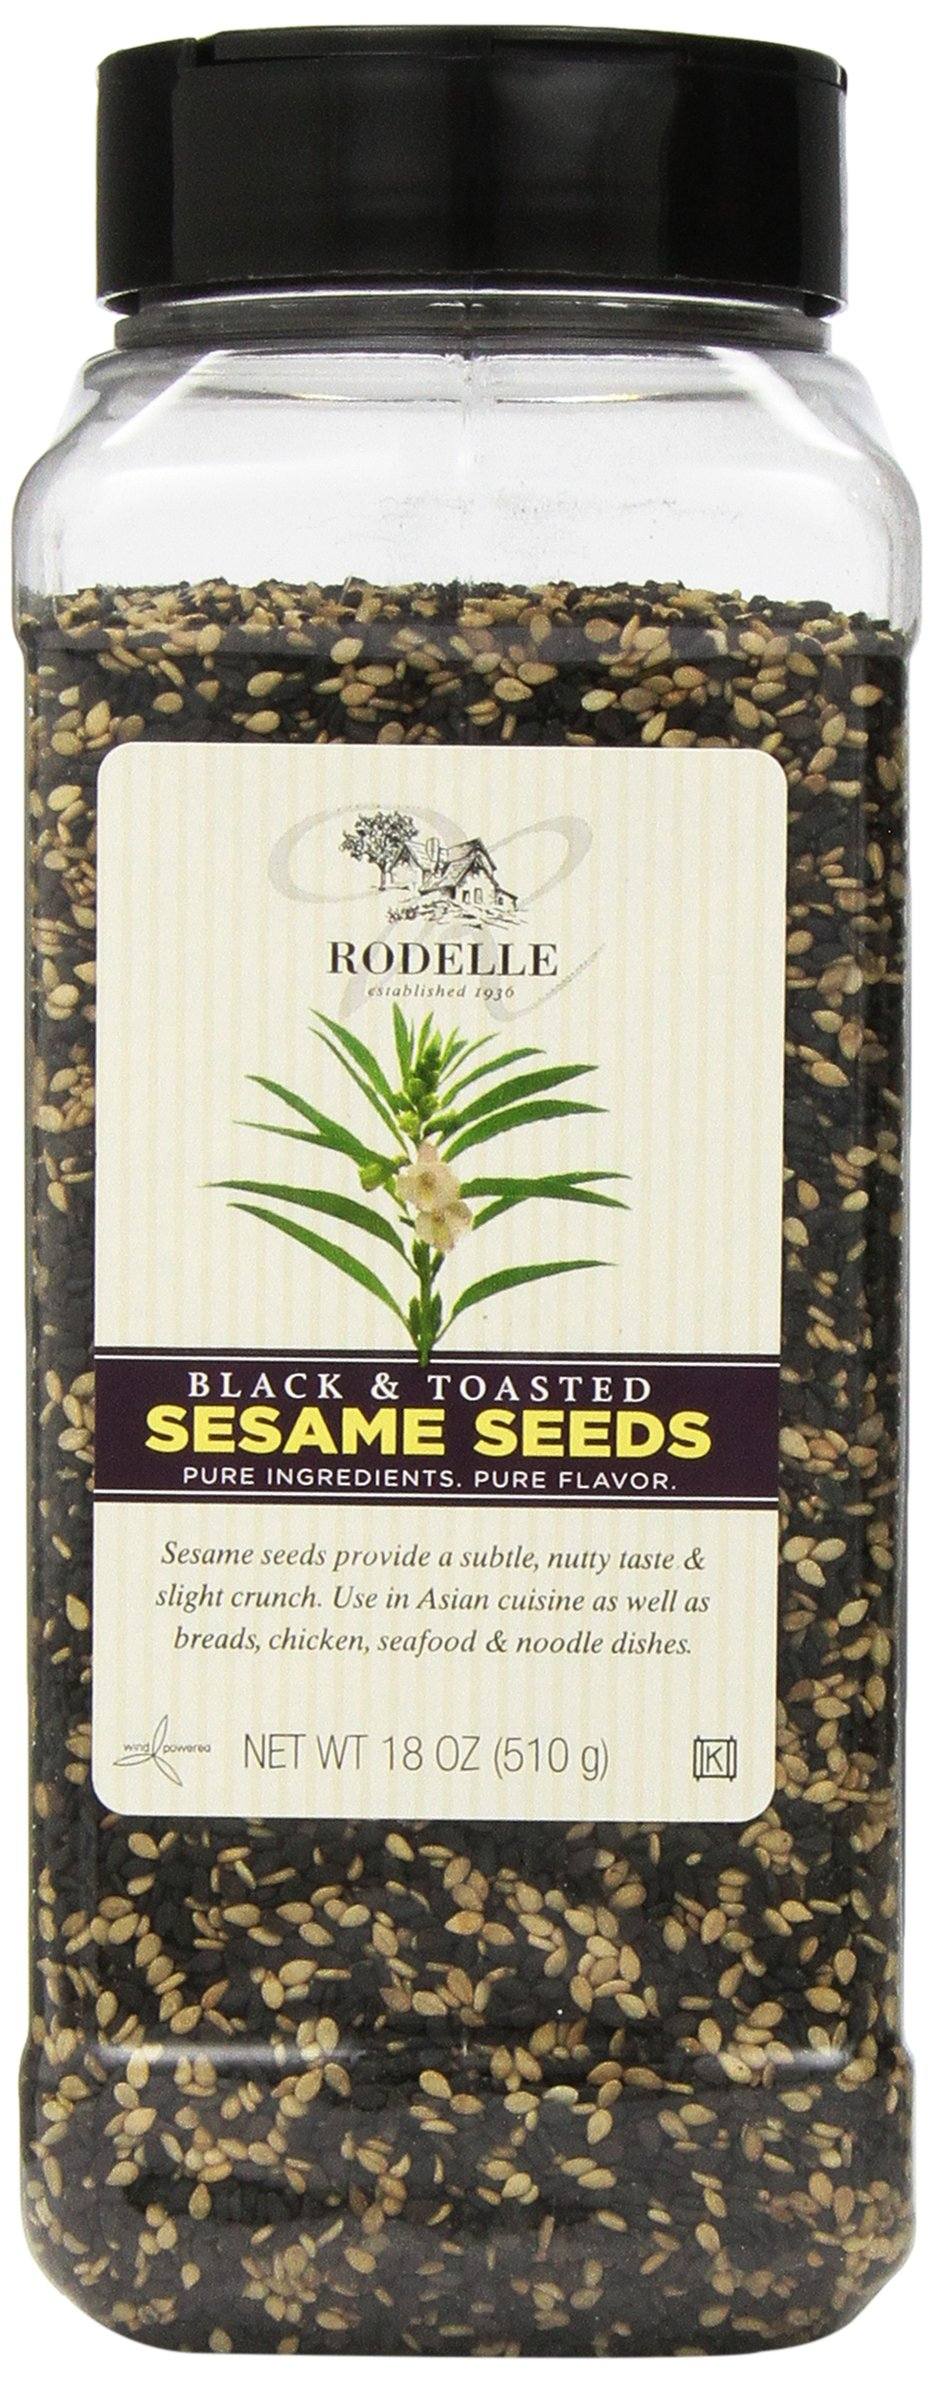 Rodelle Black and Toasted Sesame Seeds, 18 Ounce